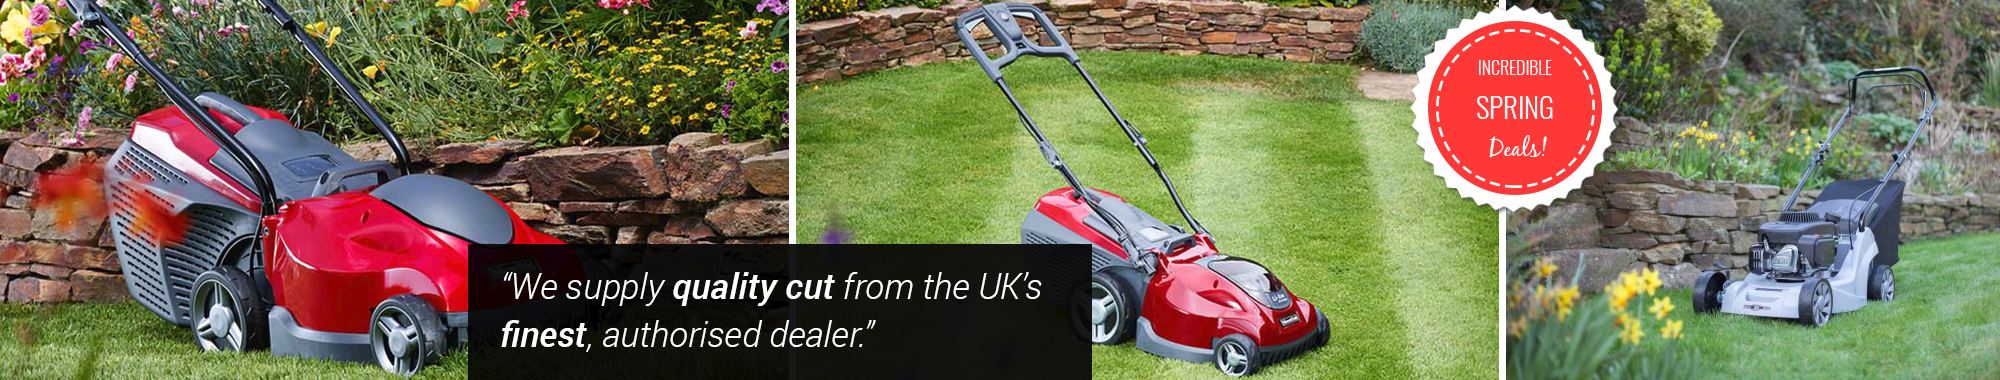 Mountfield Lawnmower Supplier Devon